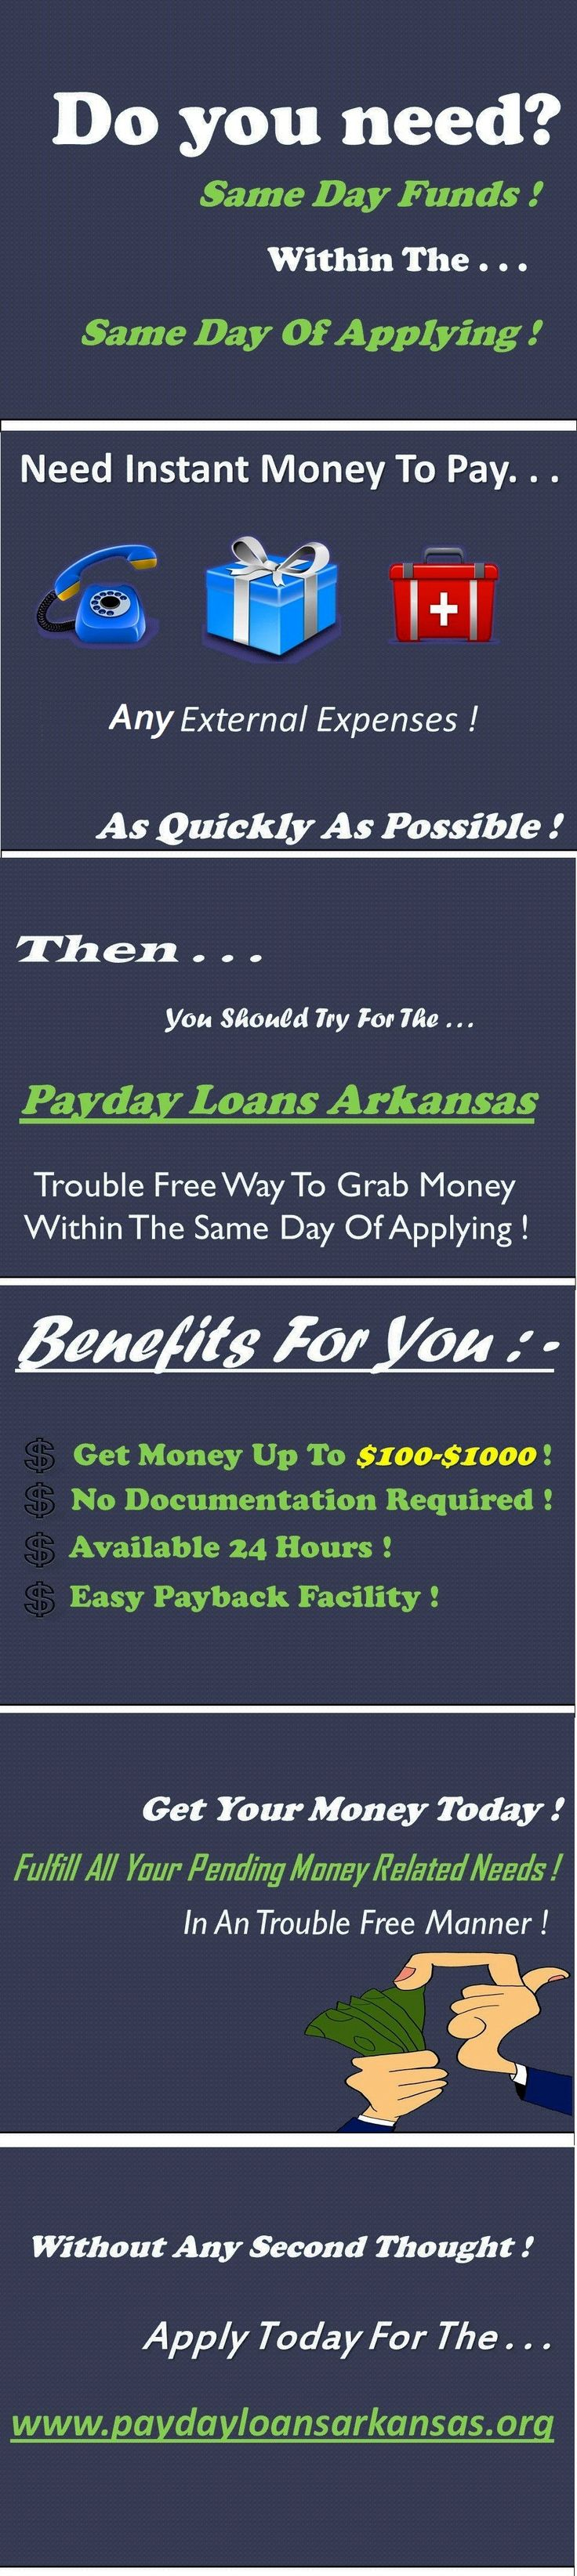 Instant payday loans arkansas help working class people to manage their unwanted cash deficit comfortably